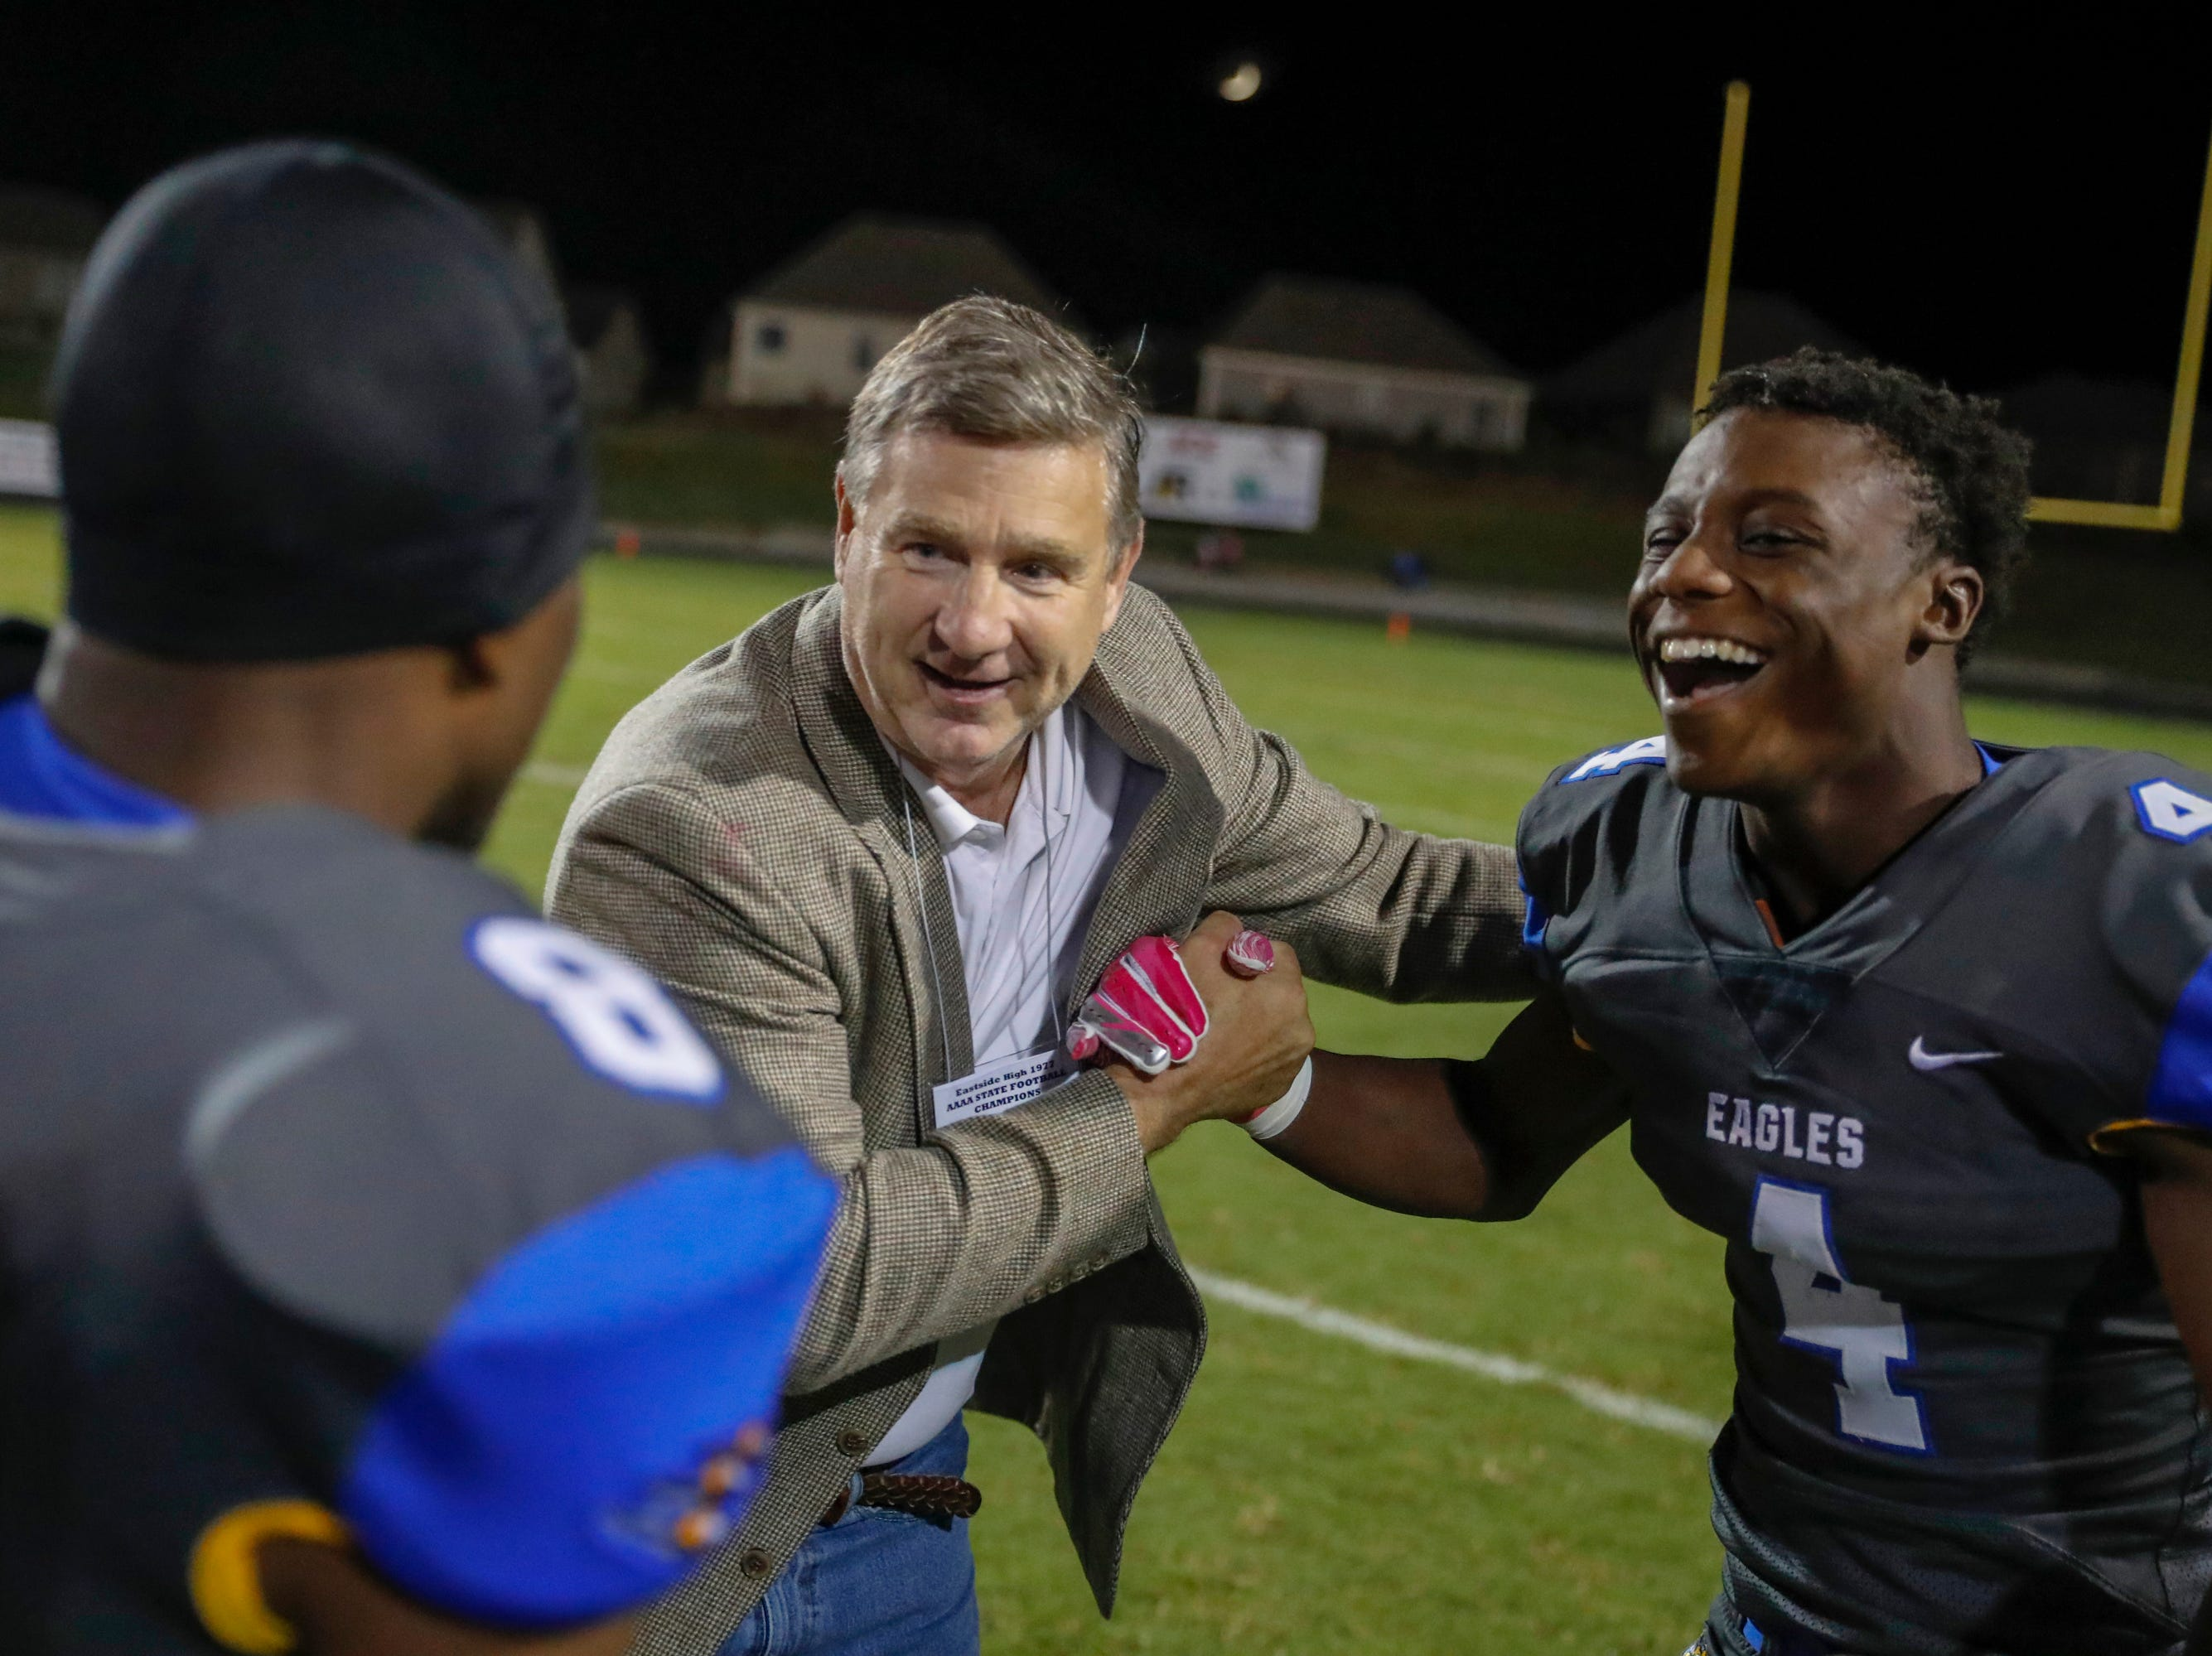 Eastside's Brad Baker of the 77 state championship team is congratulated by Eastside's Payton Mangrum (4) and Eastside's Randy Veal( 8) Friday, October 12, 2018, at Eastside's Carlisle Stadium.